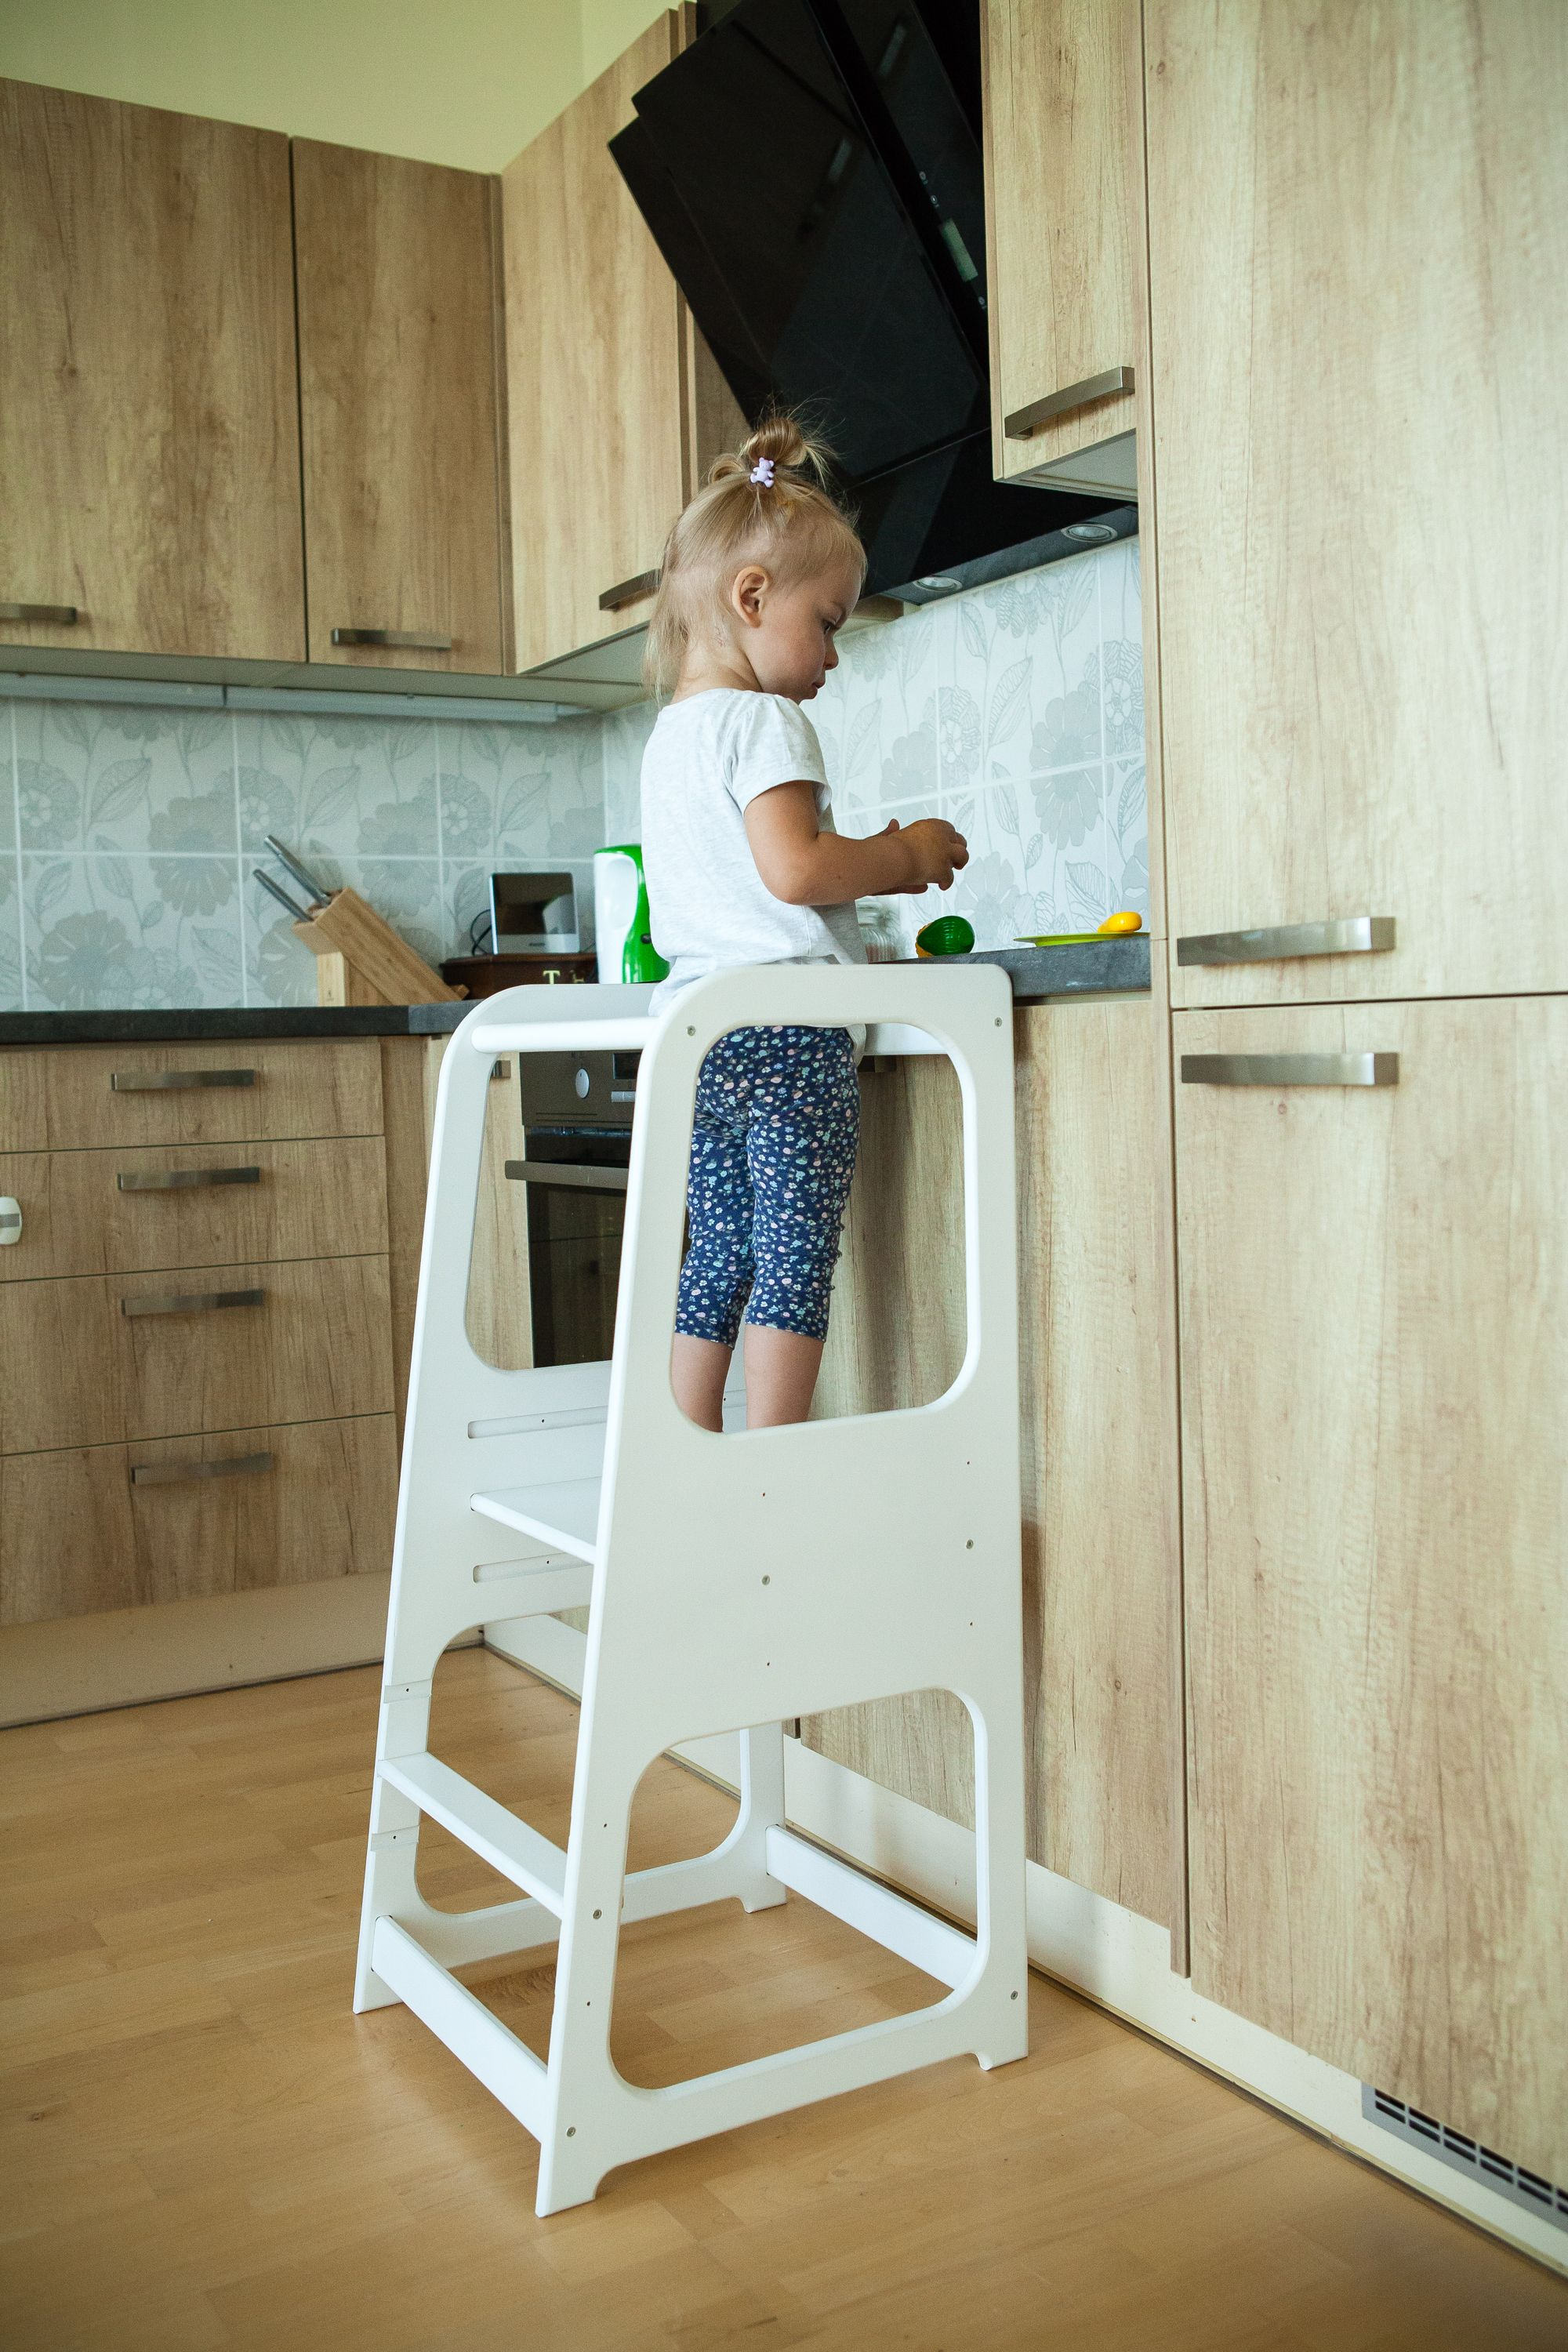 Learning Tower Kitchen Helper Kitchen Stool Safety Stool Toddler